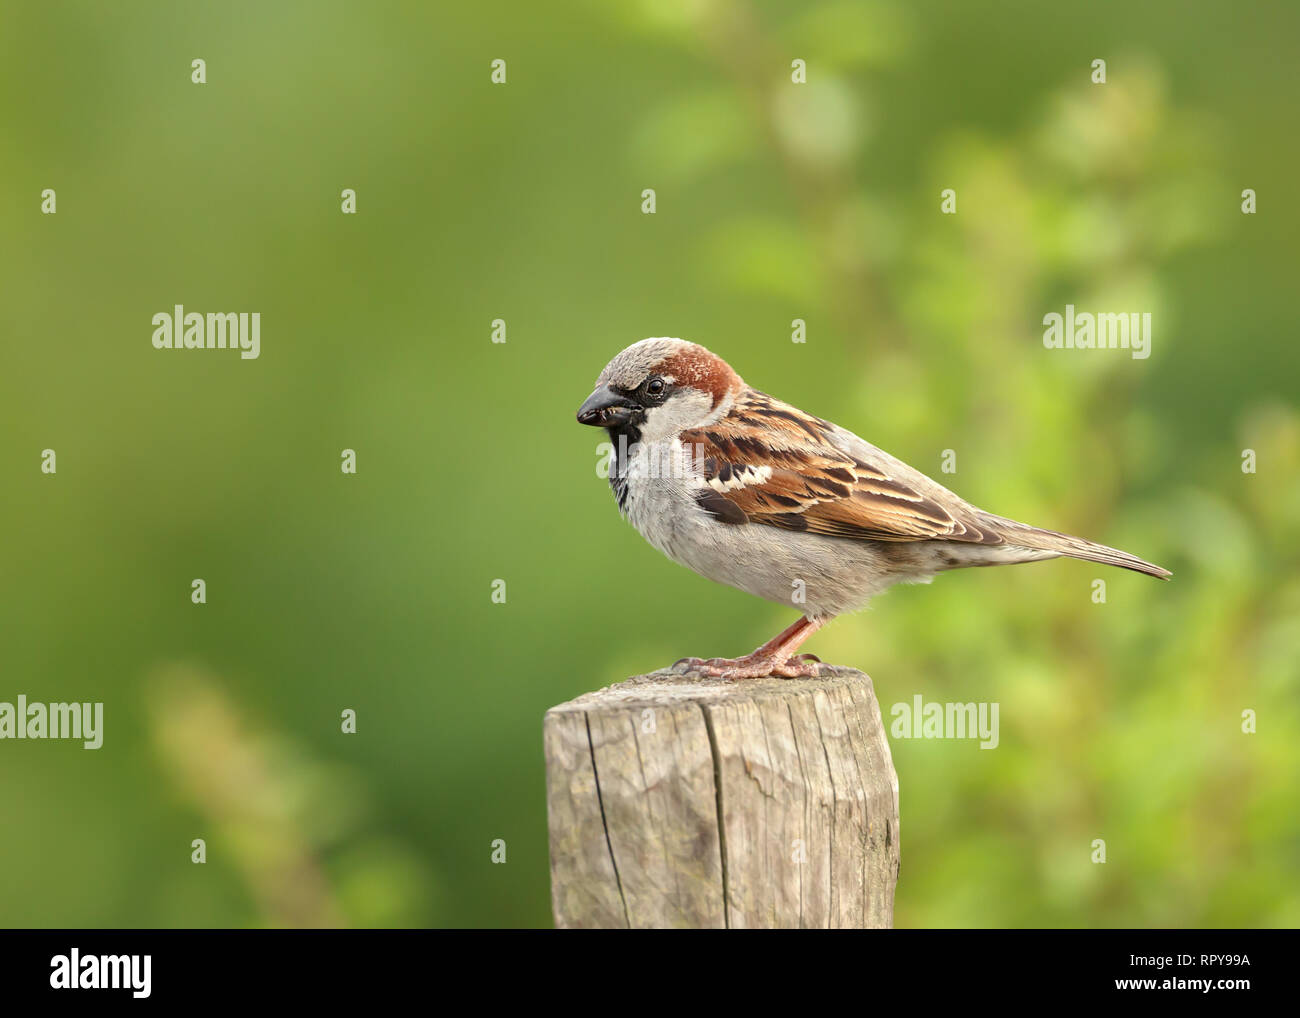 House Sparrow (Passer domesticus) perched on a post, UK. - Stock Image